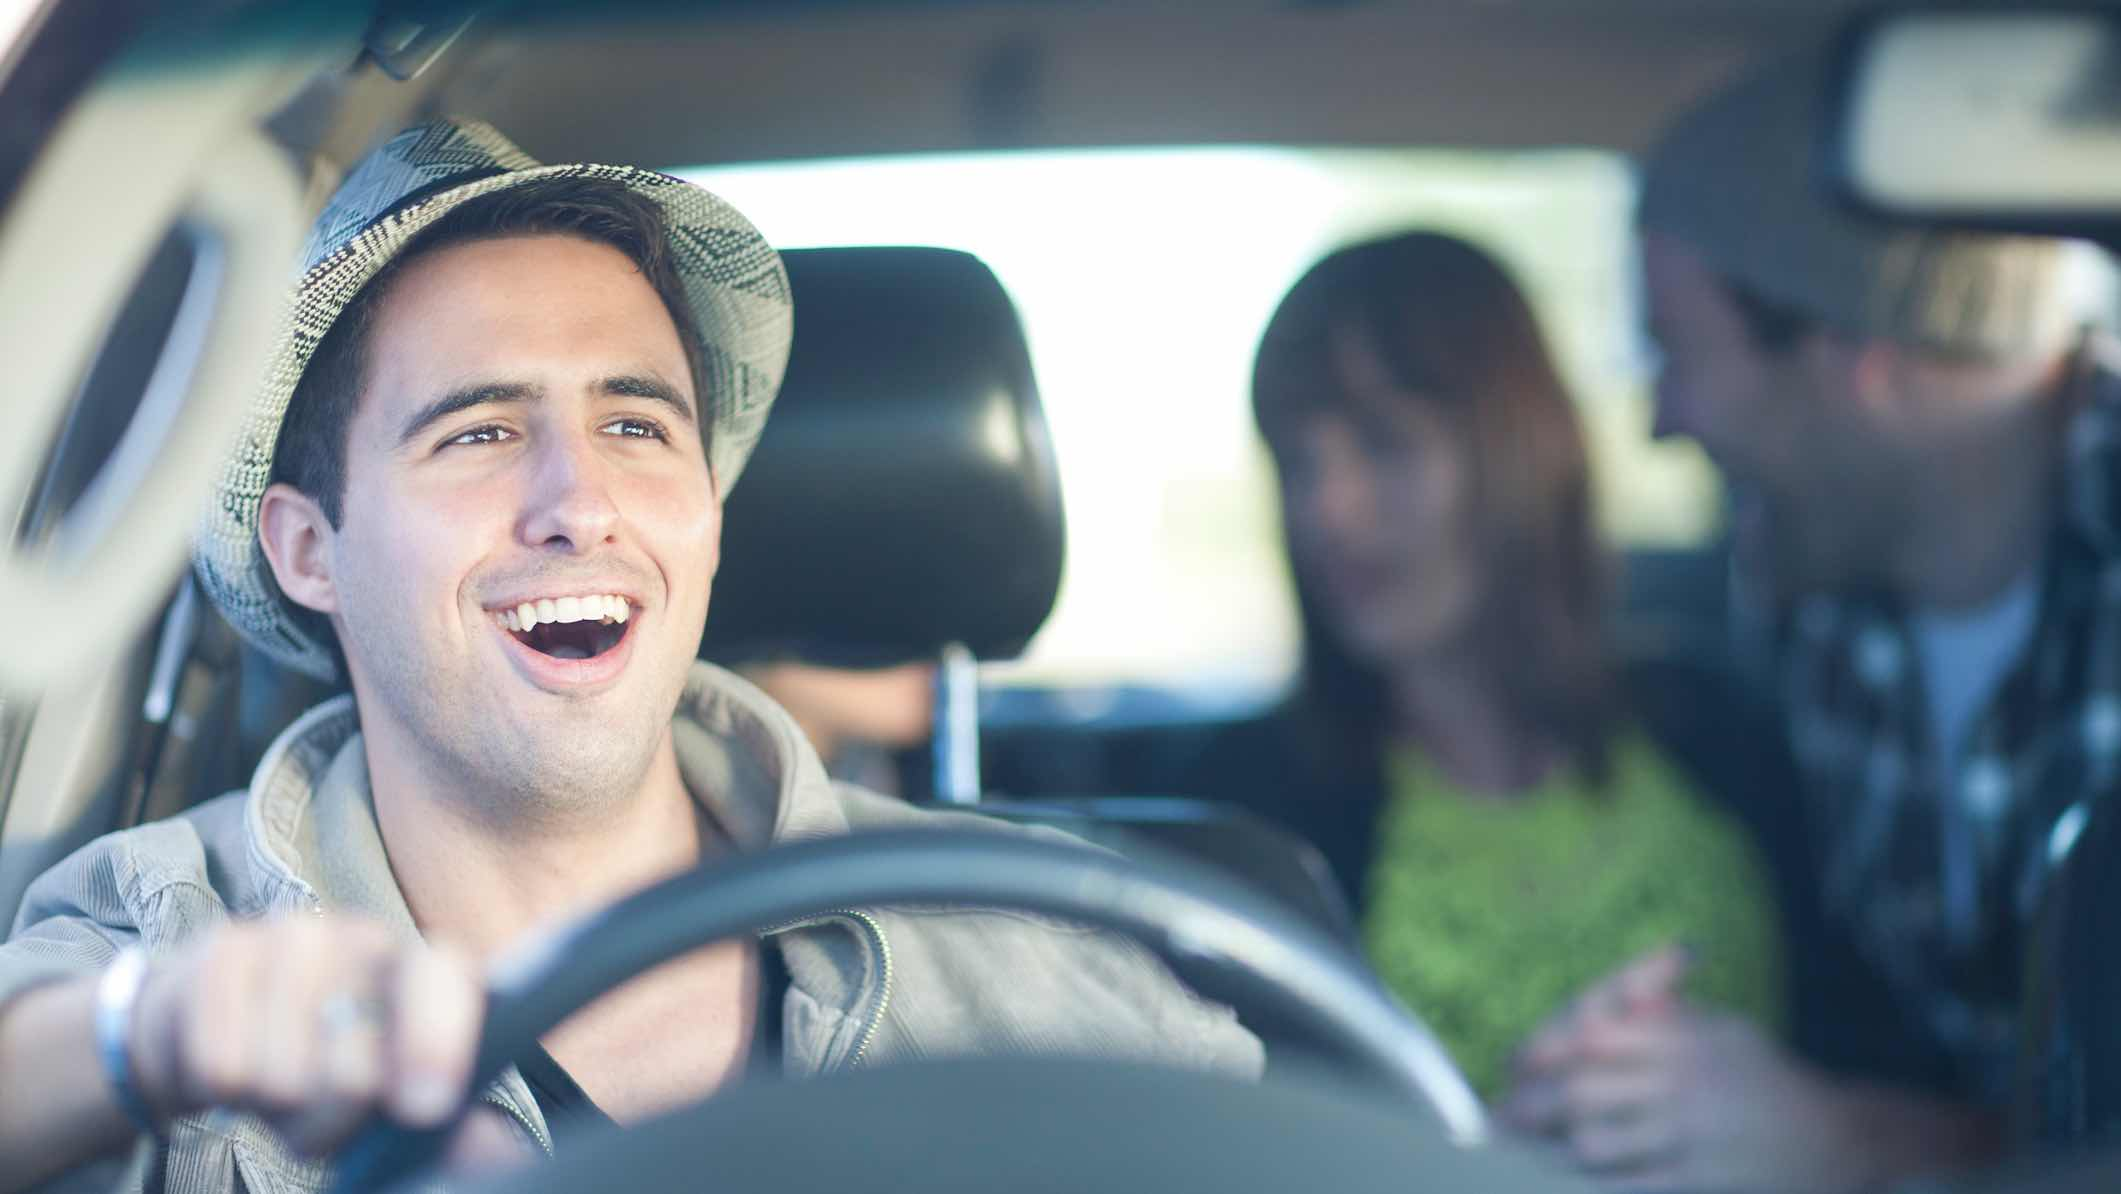 People smiling and driving in a car when a friend has borrowed the vehicle.